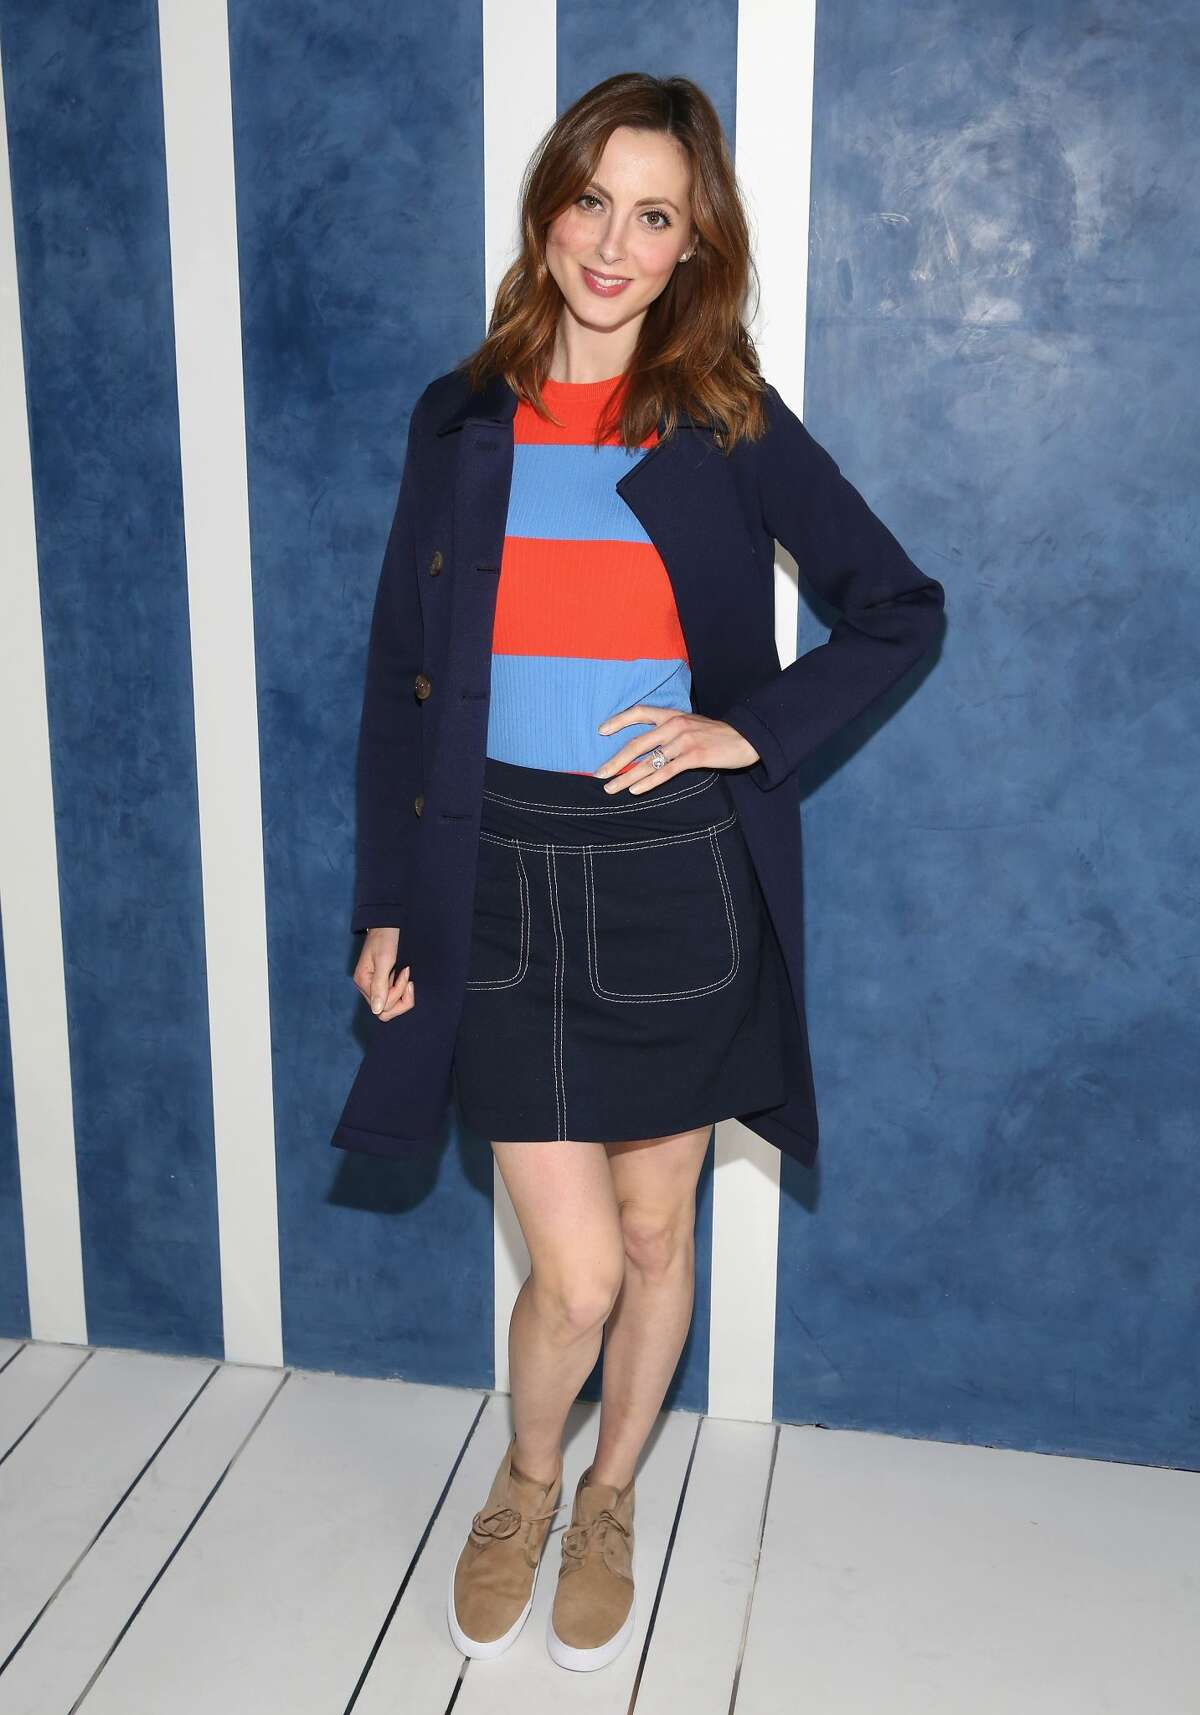 NEW YORK, NEW YORK - APRIL 06: Eva Amurri Martino attends Tory Sport Store Opening at Tory Sport on April 6, 2016 in New York City. (Photo by Robin Marchant/Getty Images for Tory Sport)